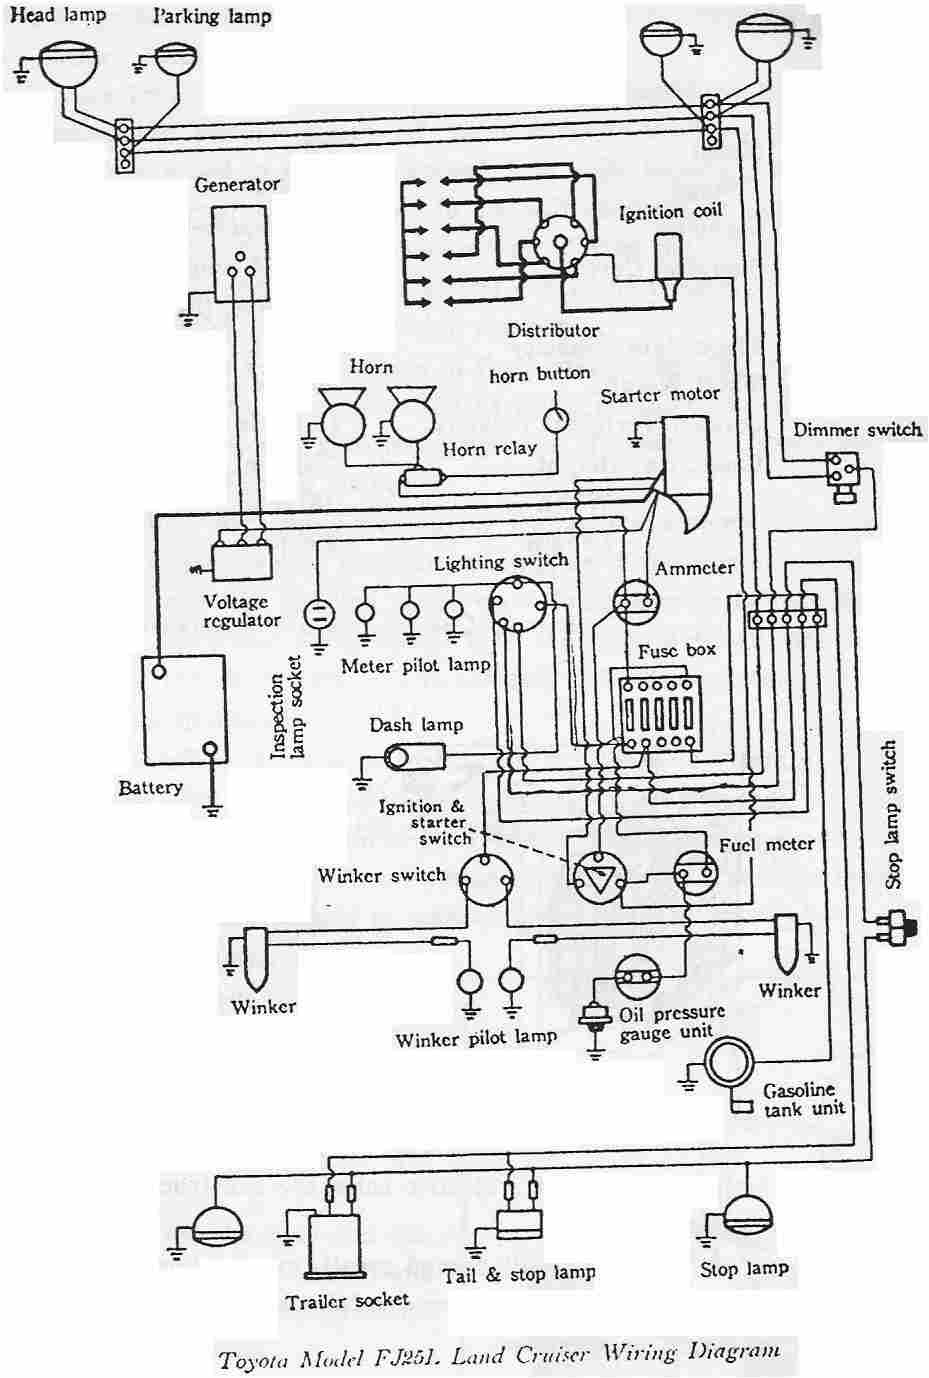 P 0900c152802667d8 besides Vw Starters Generators Alternators moreover 442816 Wiring Diagrams furthermore 4dwxz Dodge Ram 2500 4x4 Replace Fuel Shut Off Solenoid in addition Watertanks. on fuel gauge schematic